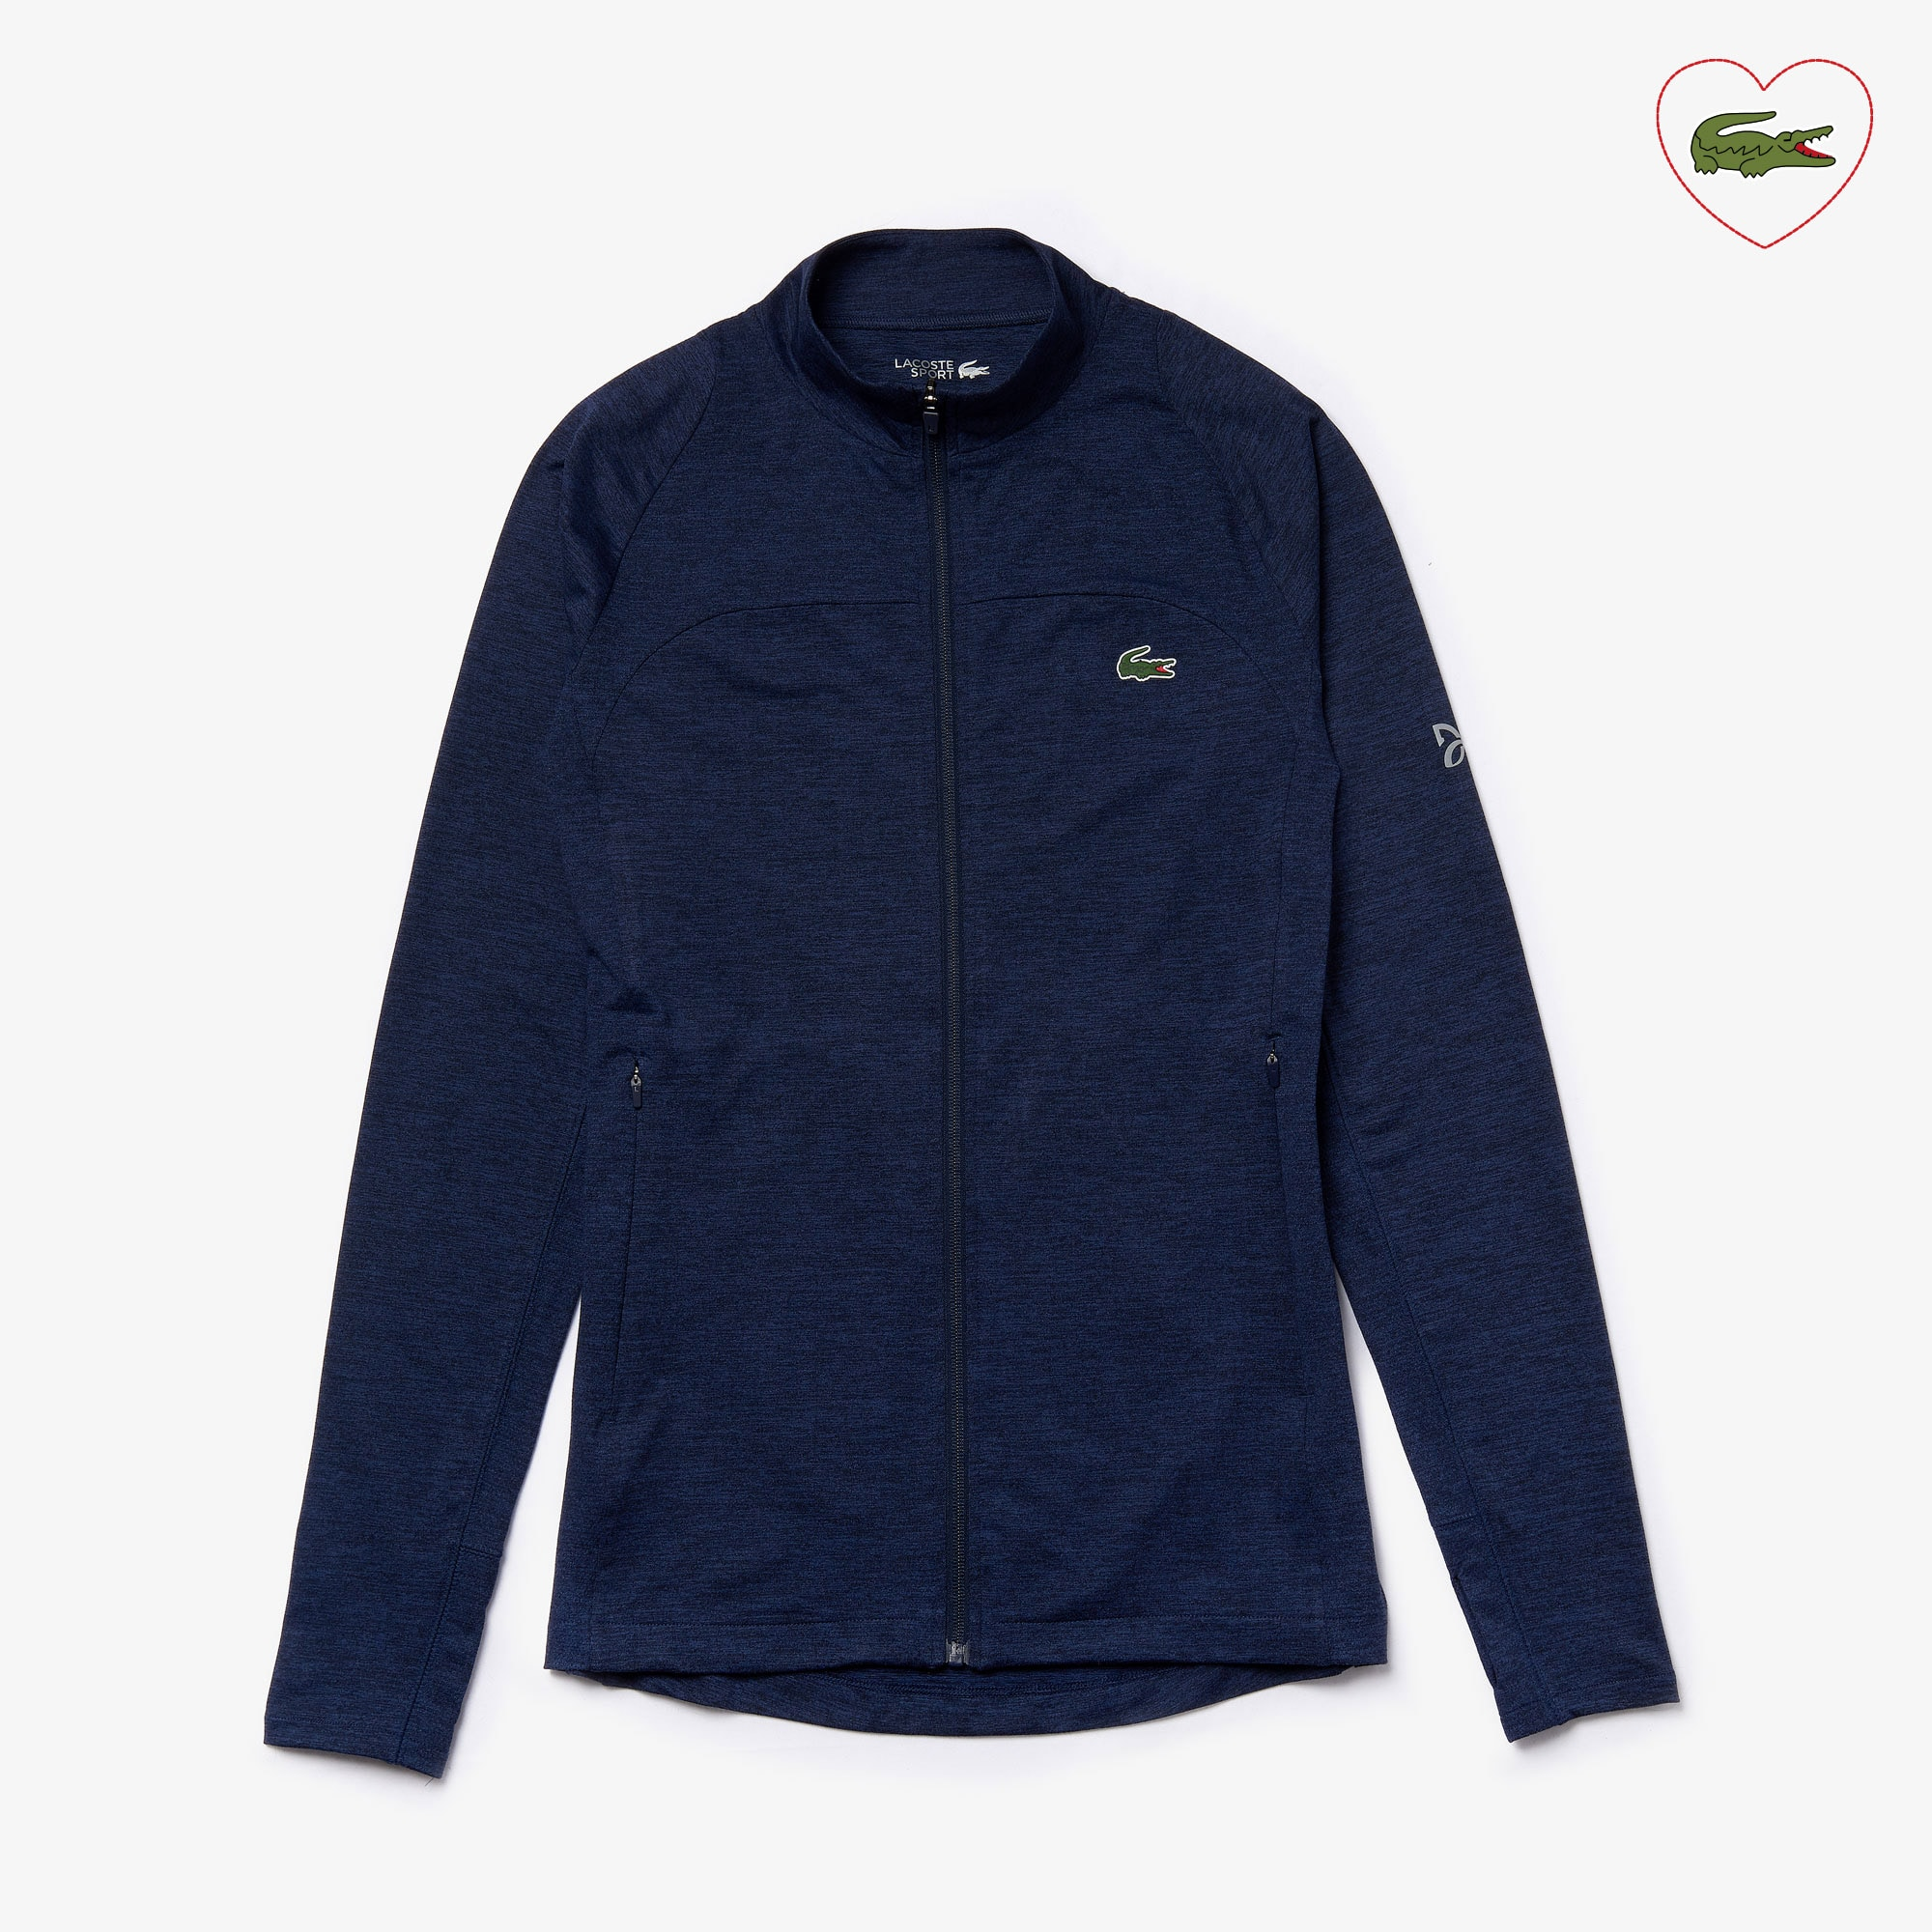 Men's Lacoste SPORT x Novak Djokovic Stretch Zippered Jacket